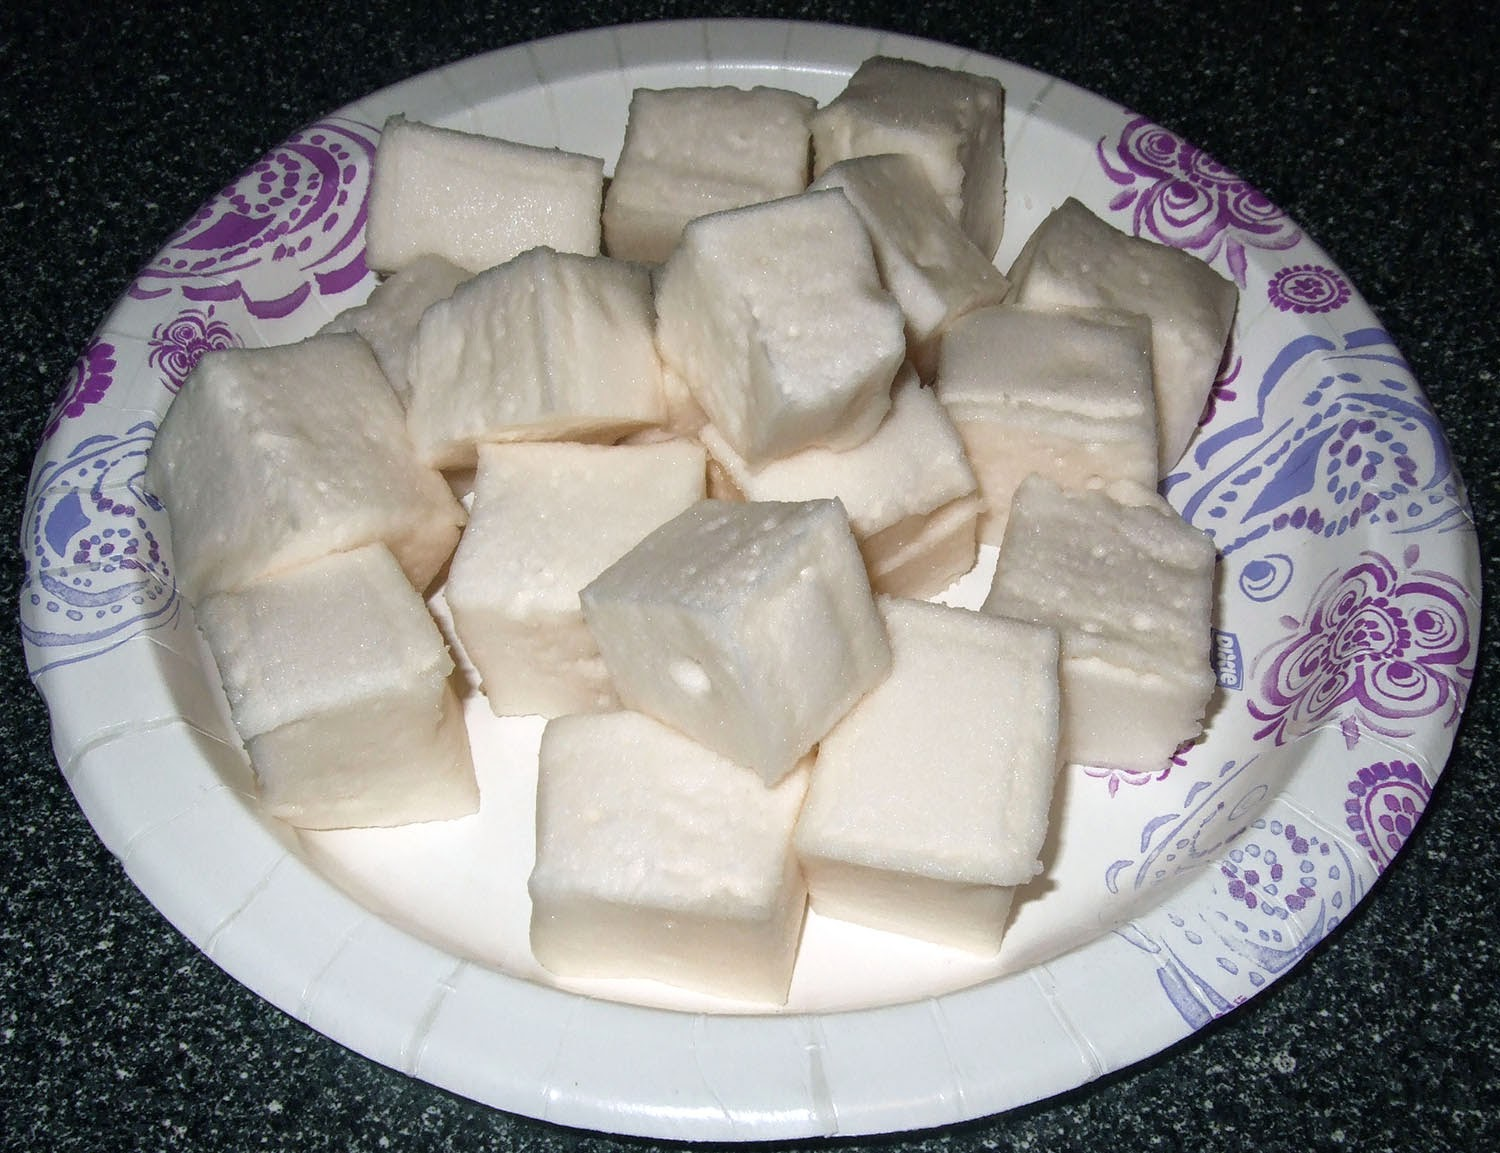 Marshmallows on a plate.